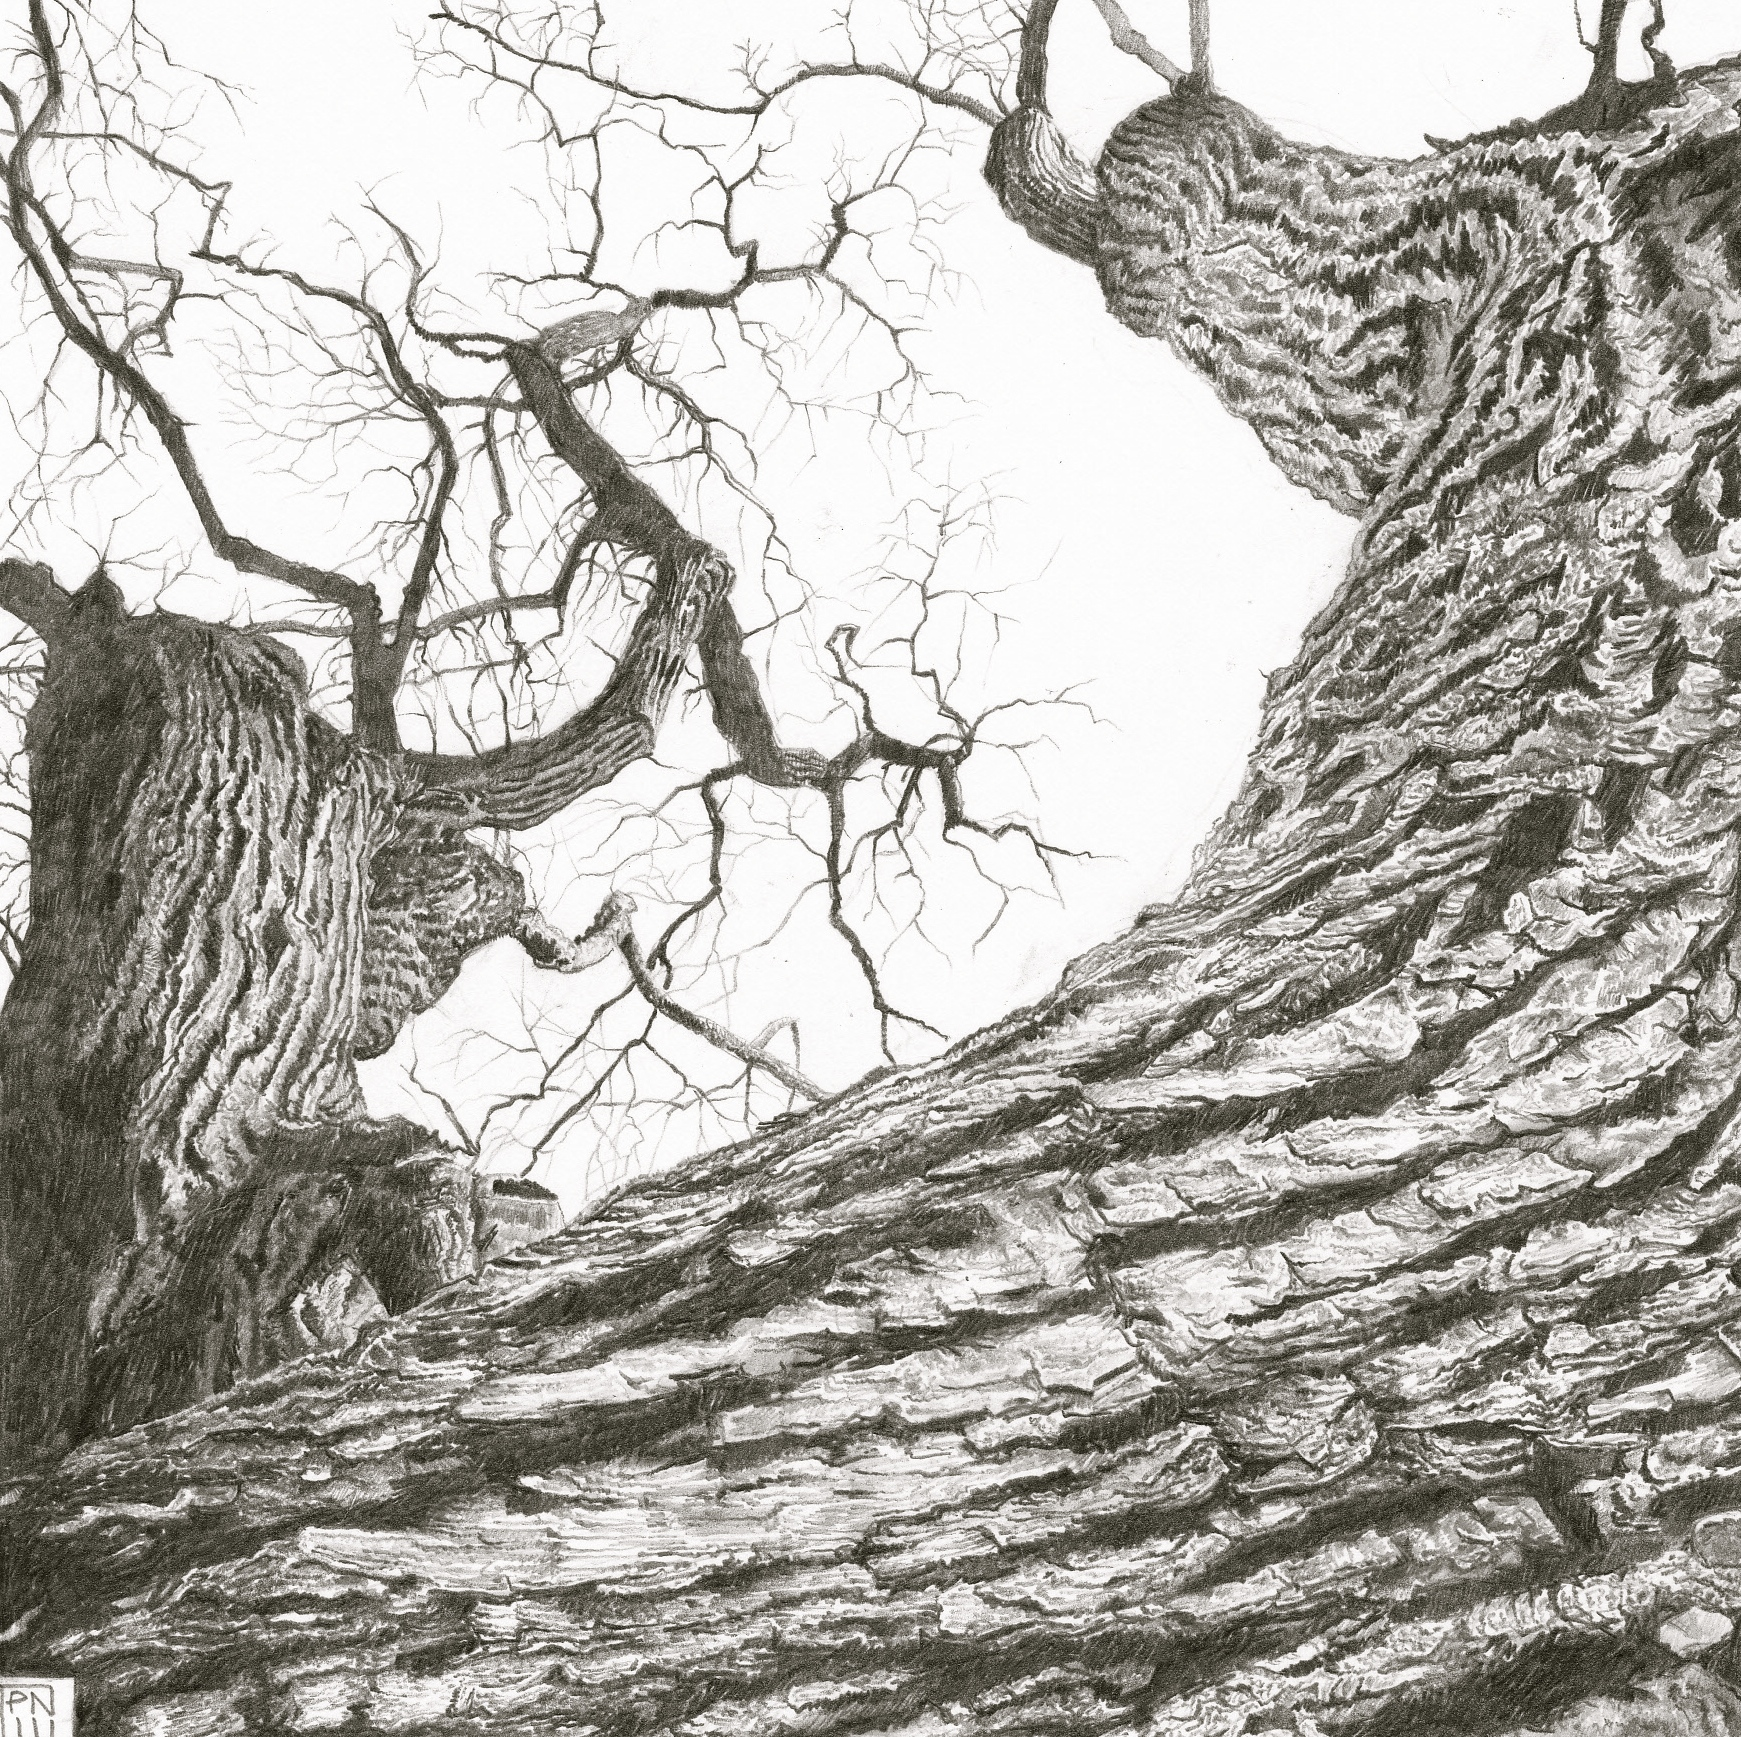 ash/lewesdonhill/dorset/bark/texture/tree/wood/pencil/drawing/graphite